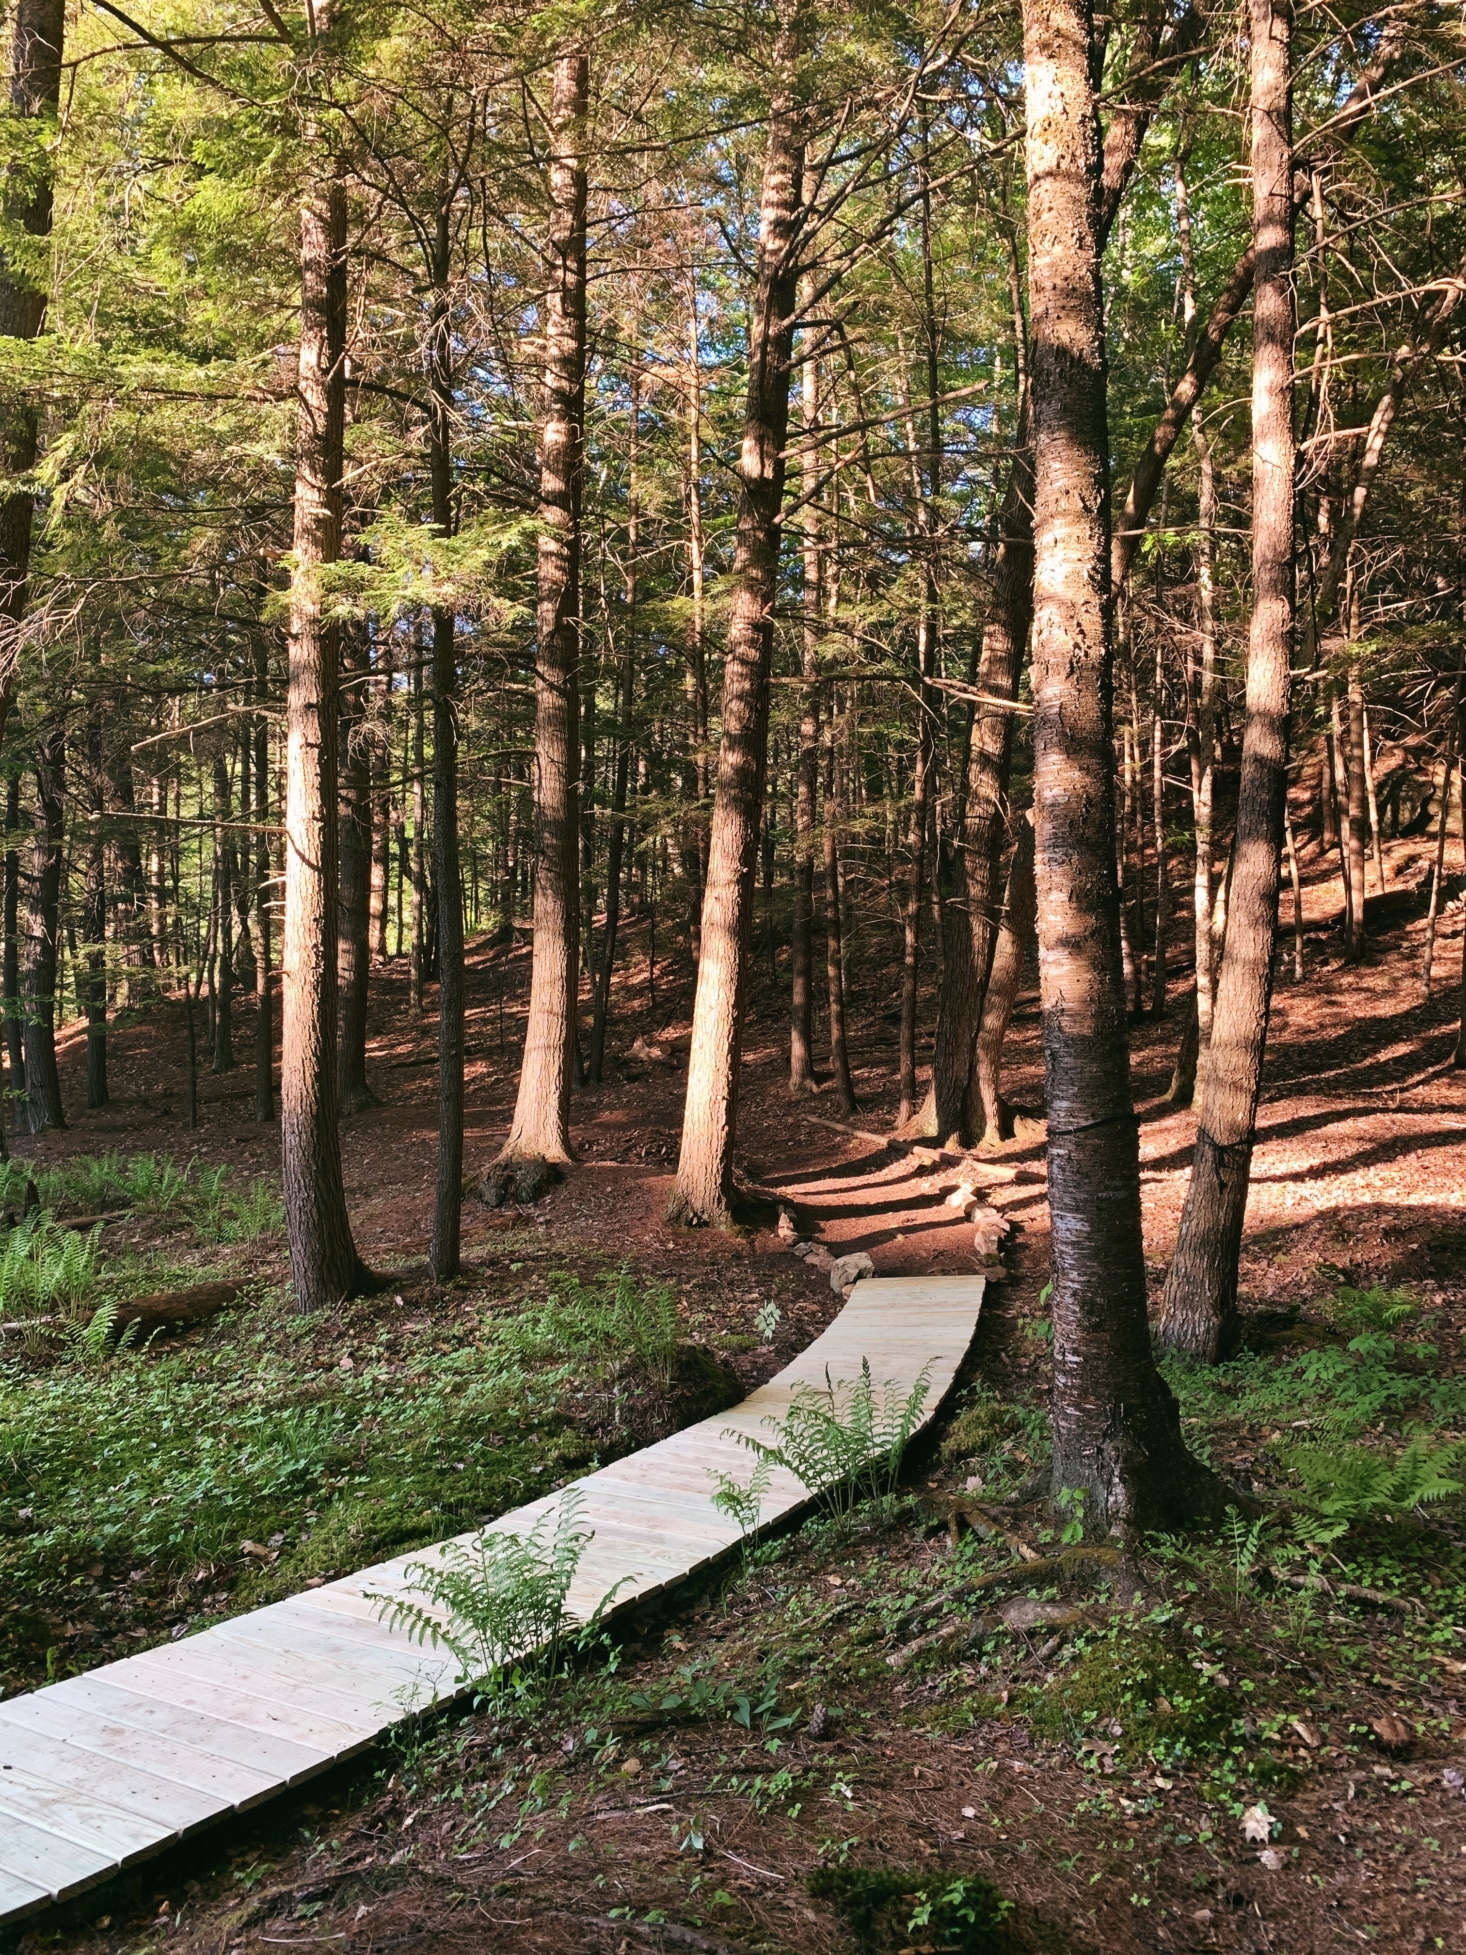 The finished boardwalk, leading into the woods.